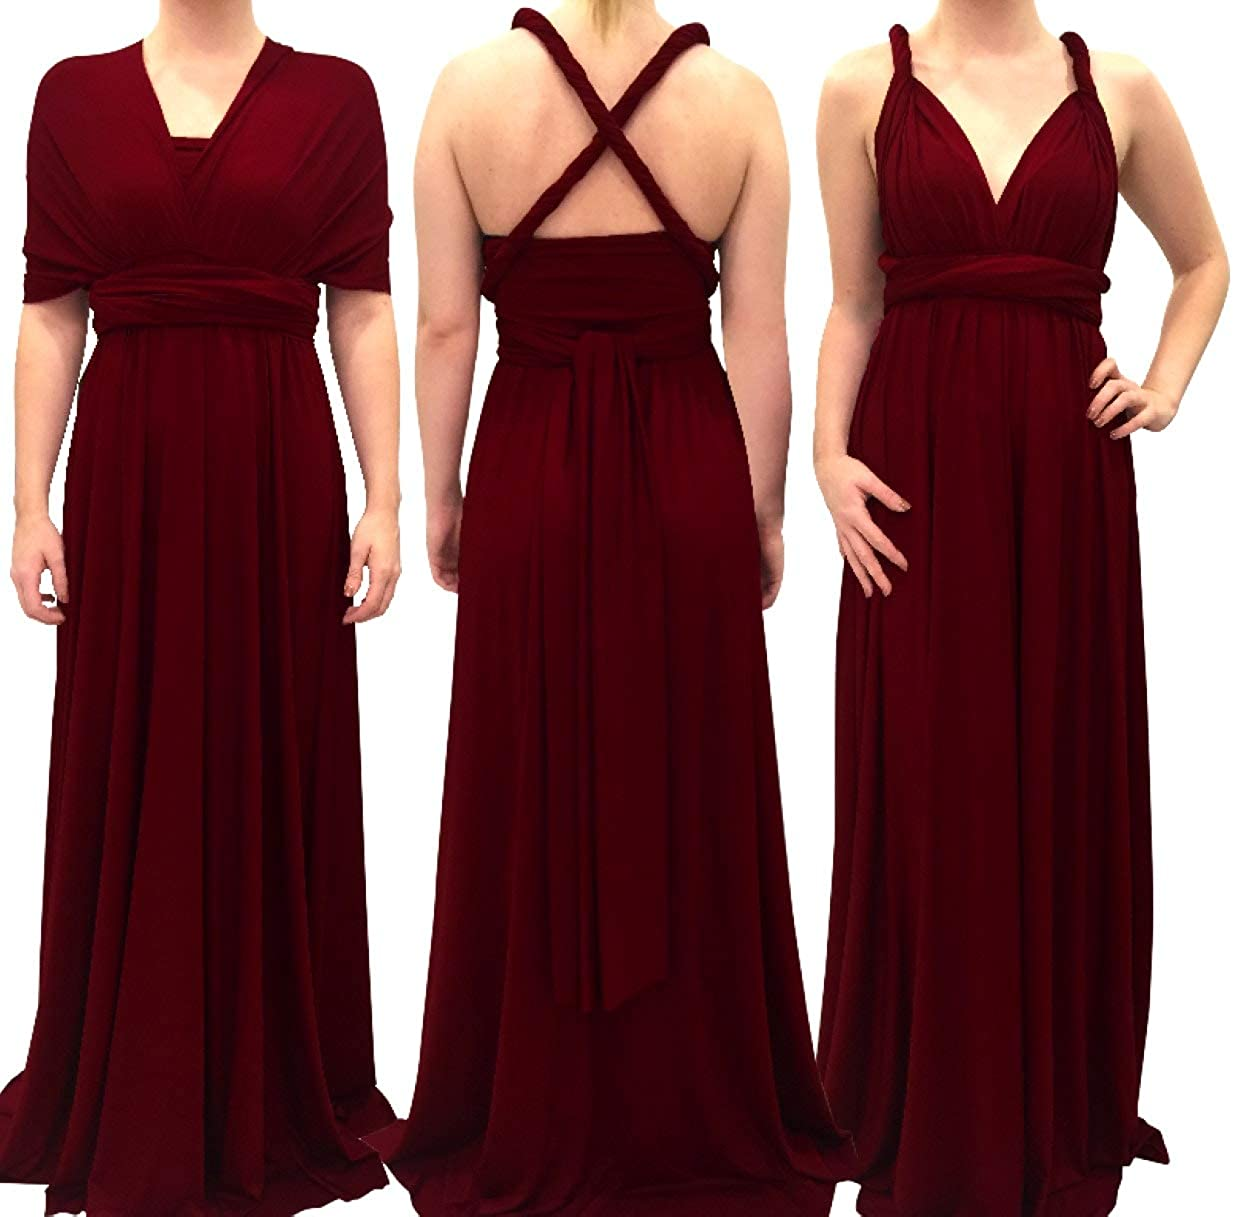 34a35826295 4Now Fashions Long Burgundy Infinity Dress Long Bridesmaid Dress Prom  Convertible Multiway at Amazon Women s Clothing store